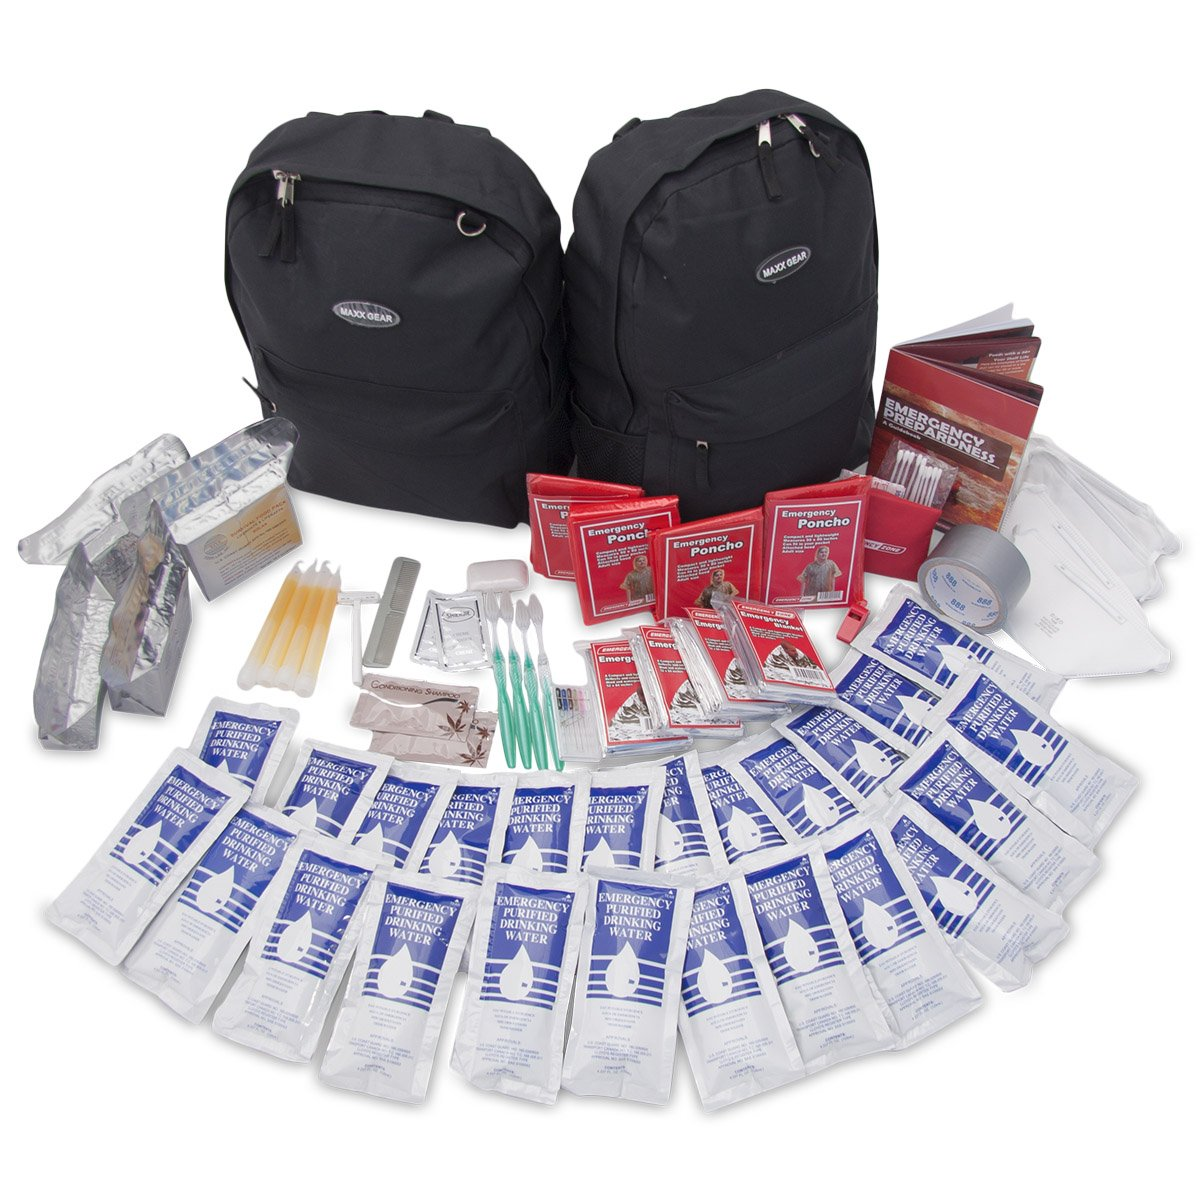 Quick Start Emergency Kit, 2 and 4 Person, Emergency Zone Brand (4 Person)